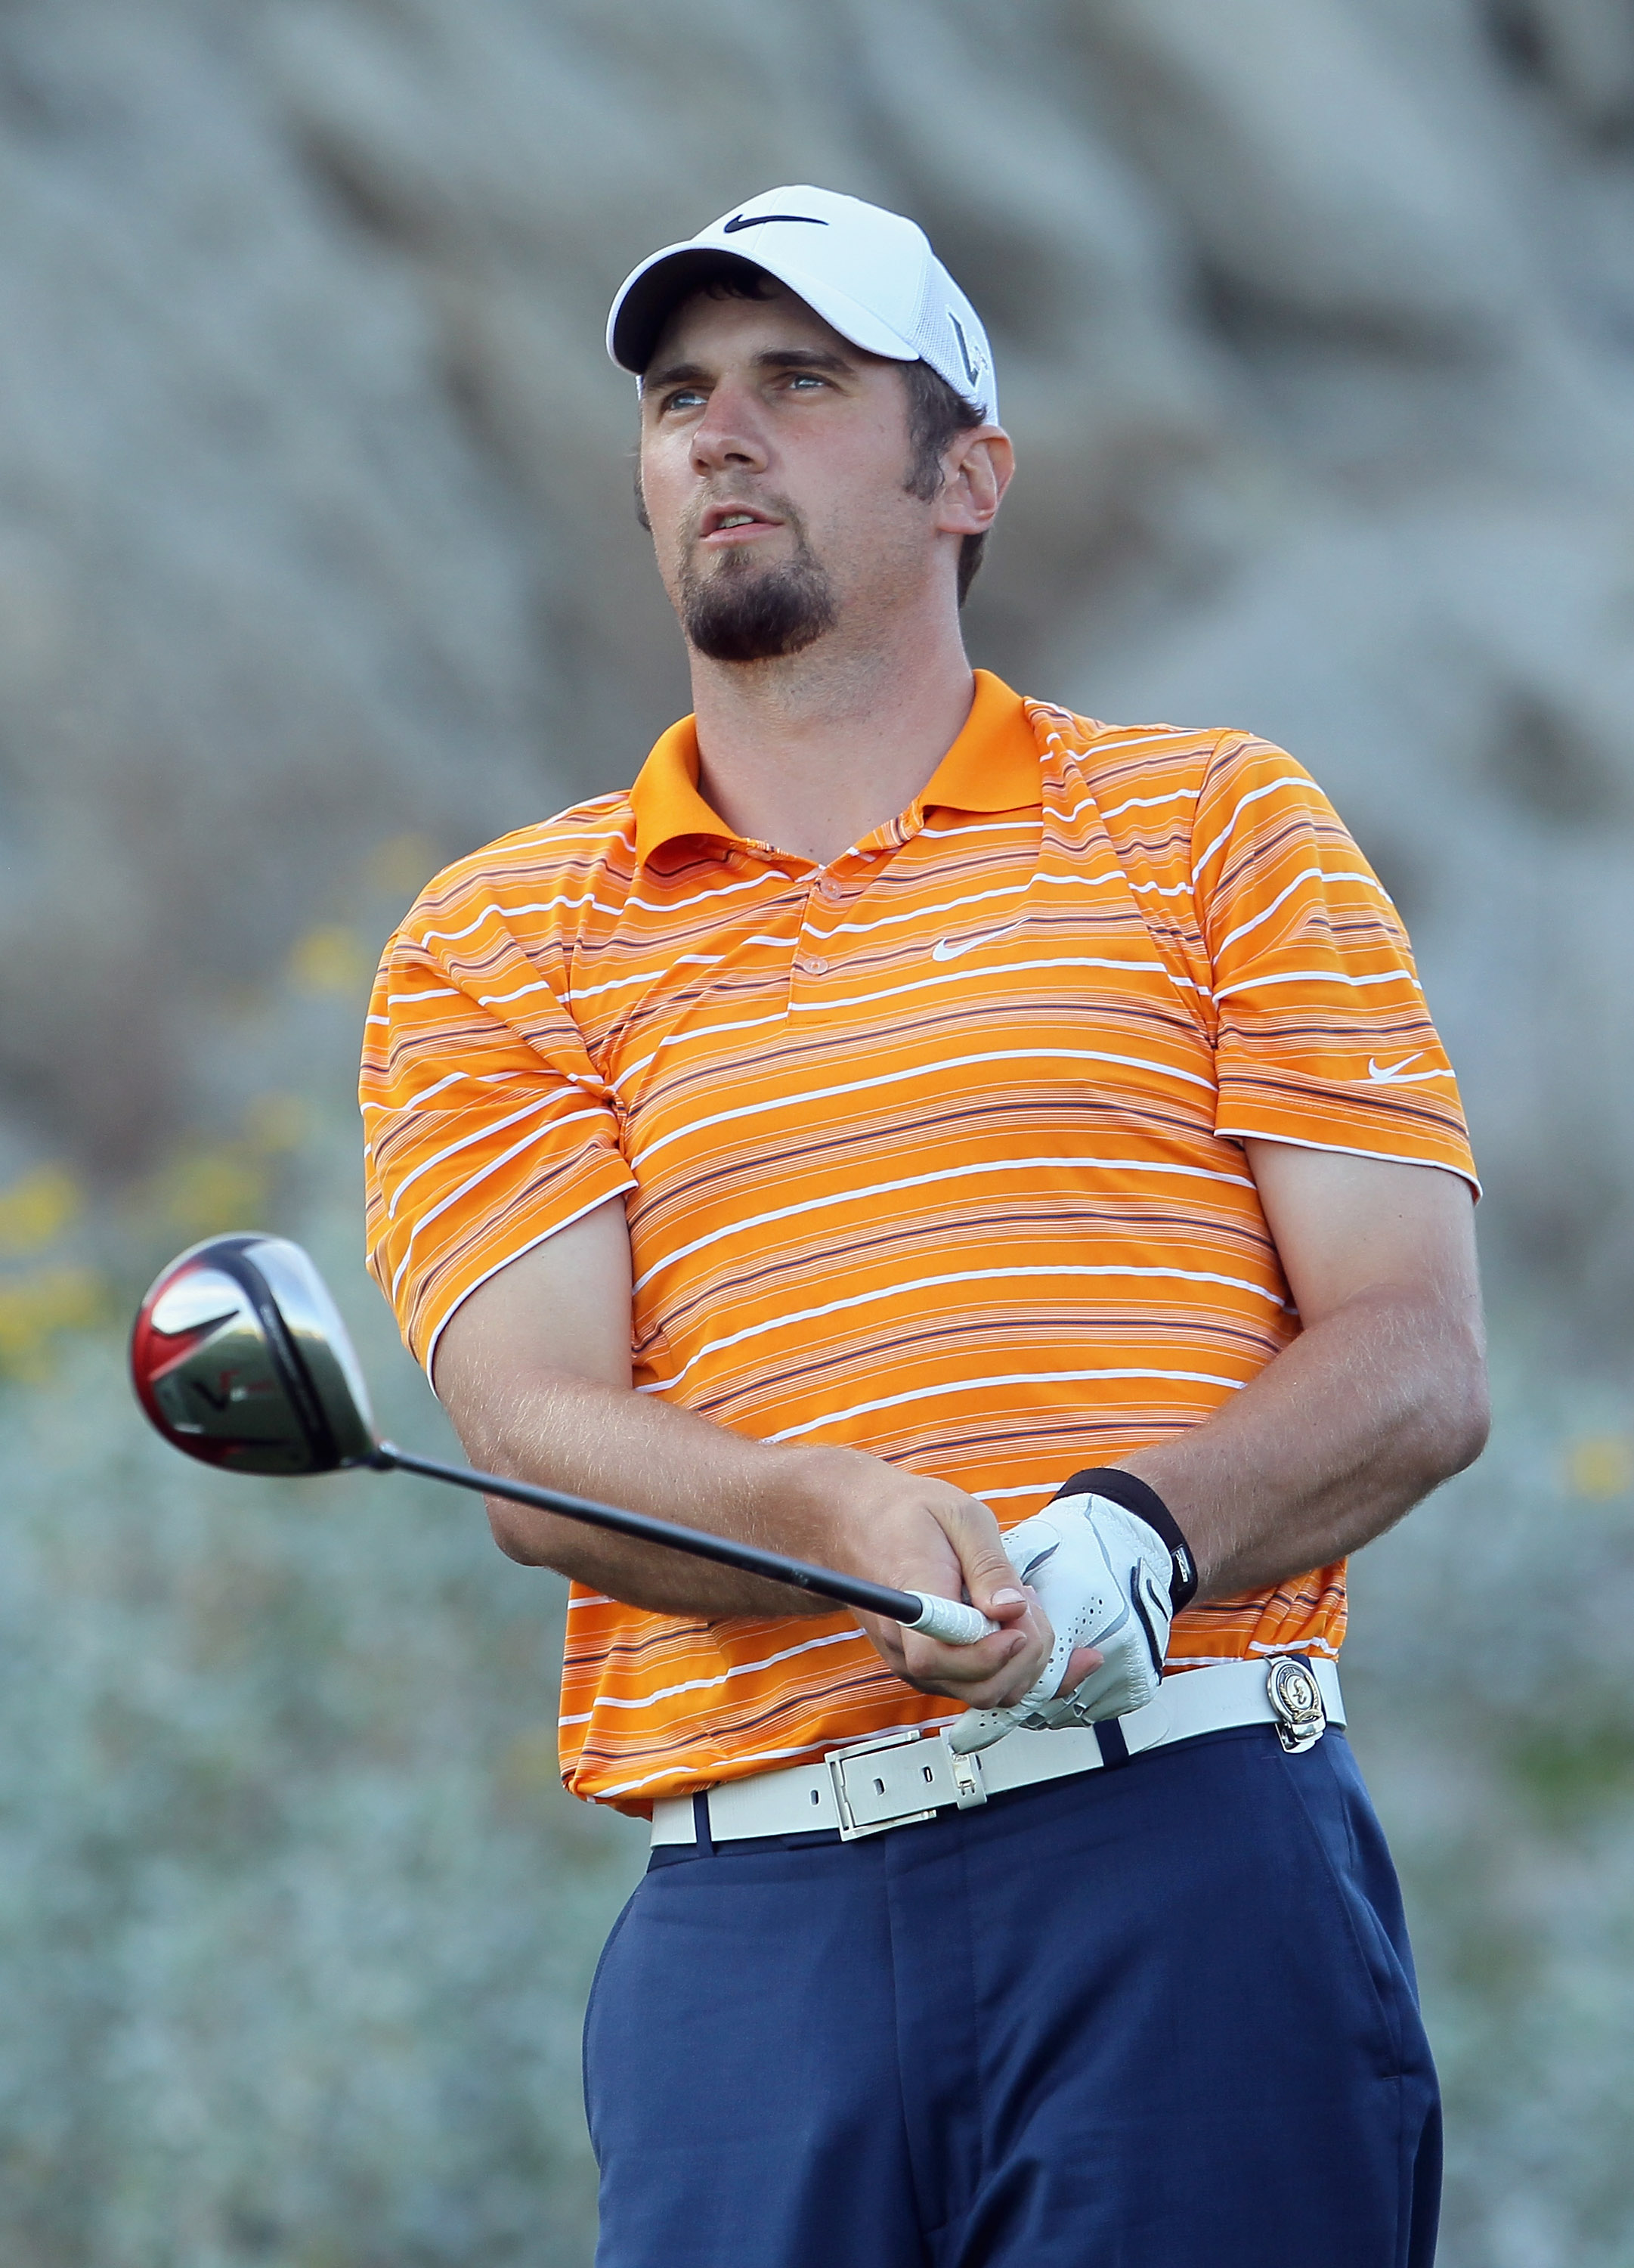 LA QUINTA, CA - JANUARY 19:  Arizona Cardinals quarterback Derek Anderson watches his tee shot on the 18th hole during the first round of the Bob Hope Classic at the Silver Rock Resort on January 19, 2011 in La Quinta, California.  (Photo by Jeff Gross/Ge